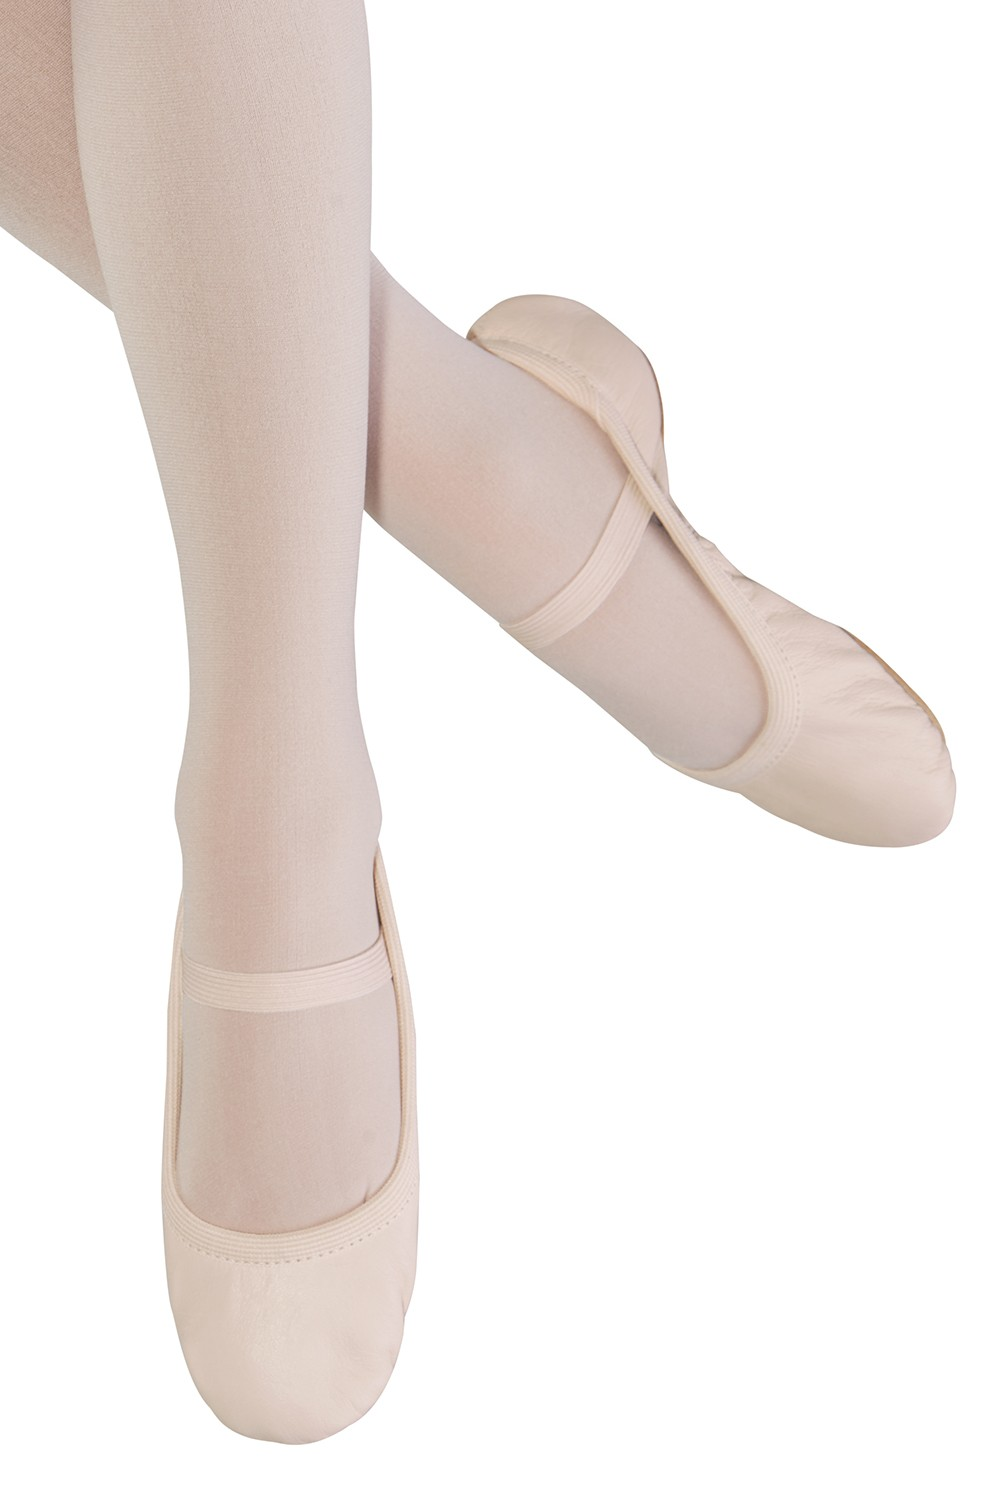 Giselle - Girls Girl's Ballet Shoes